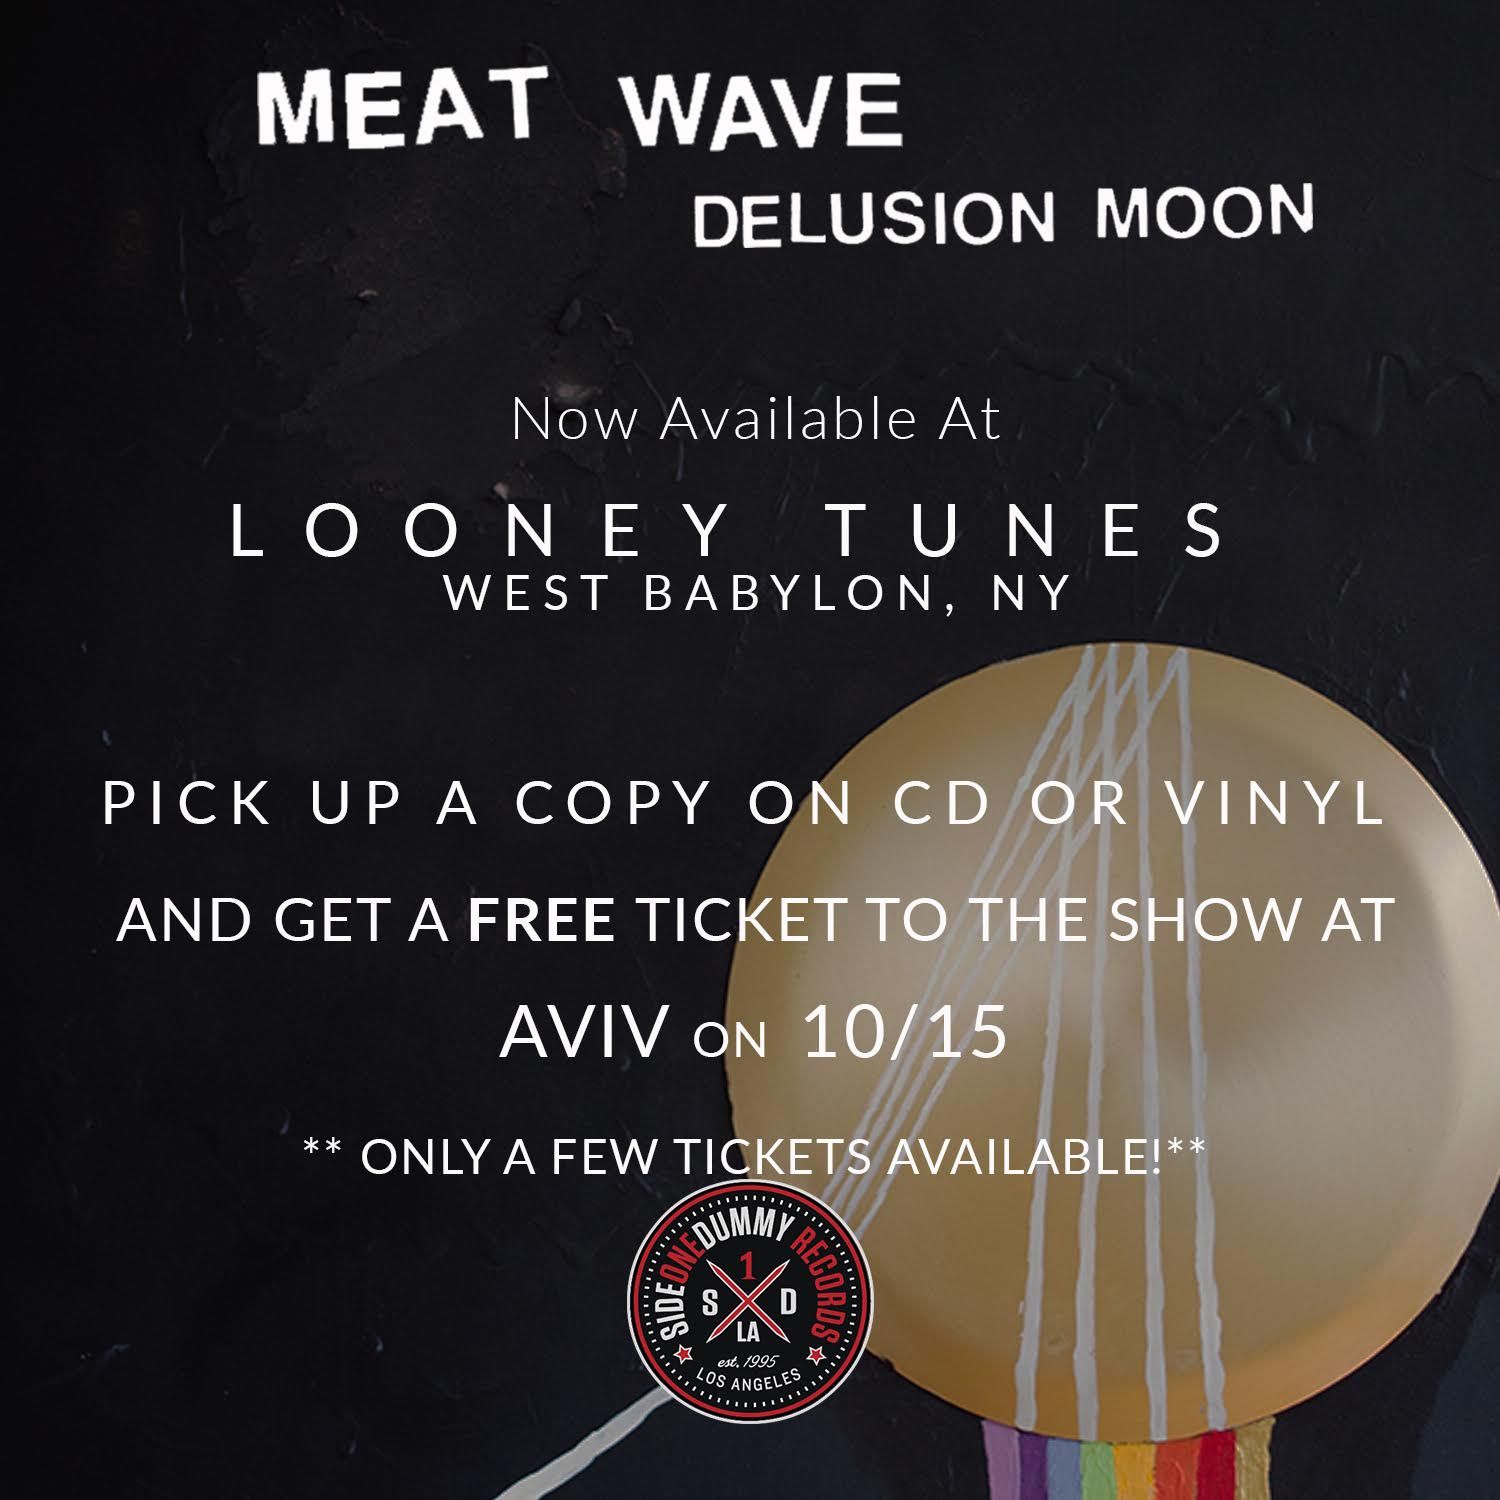 meat wave ticket giveaway